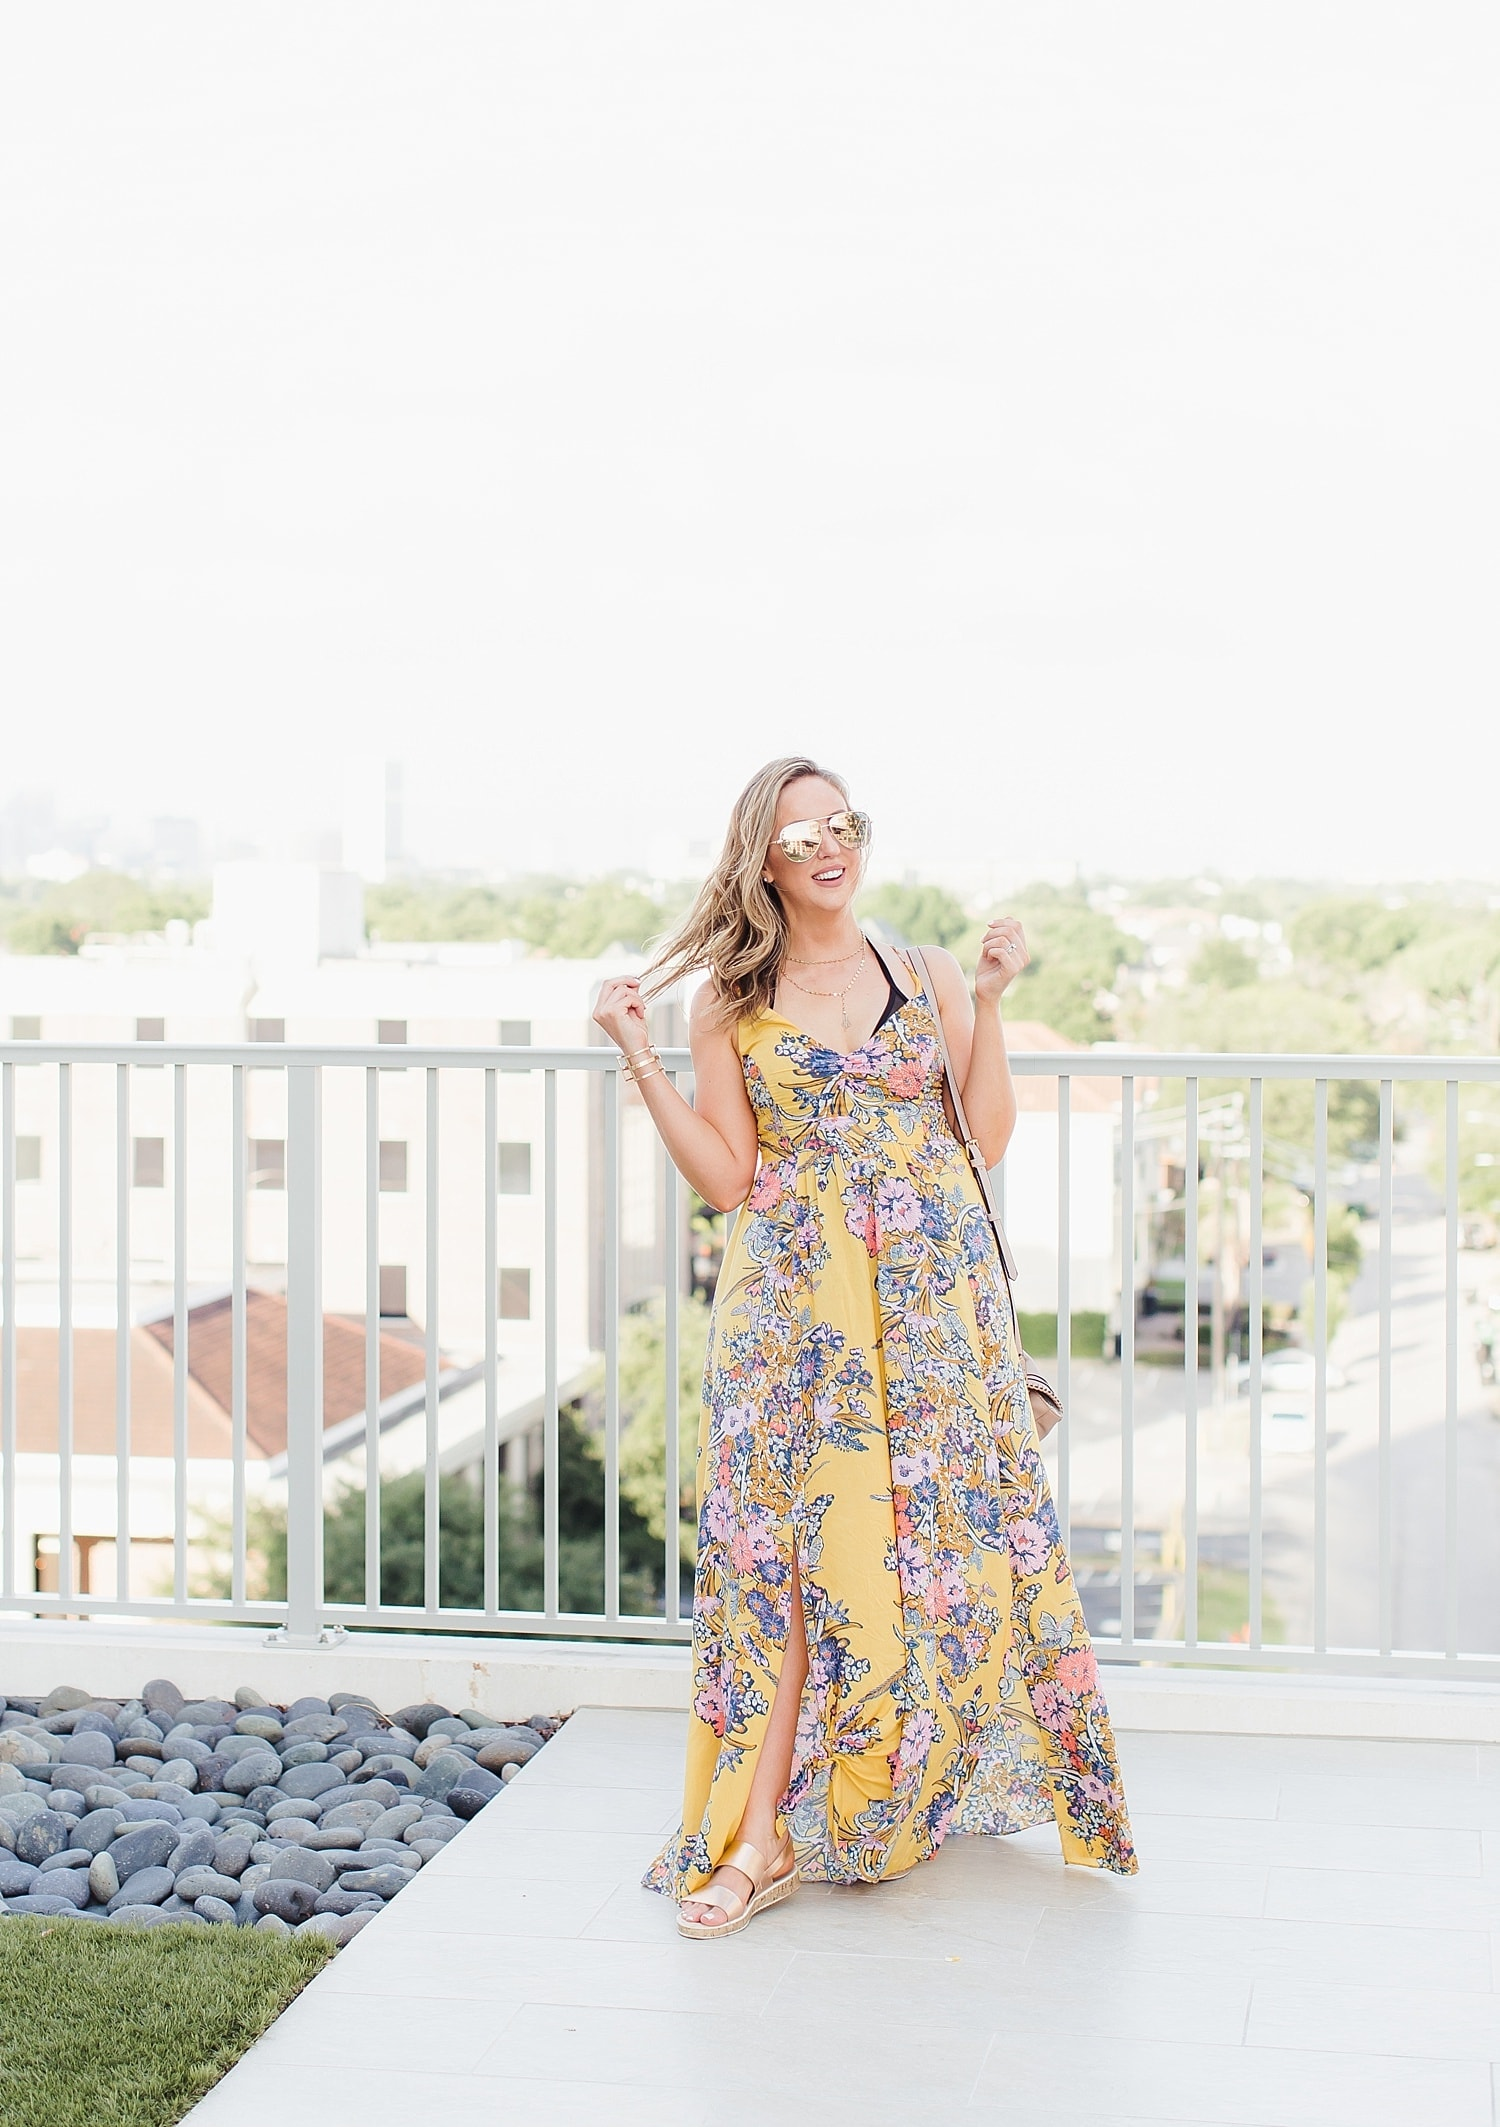 Houston blogger Meg O. on the Go styles the Free People Through the Vine Printed Maxi dress from Evereve